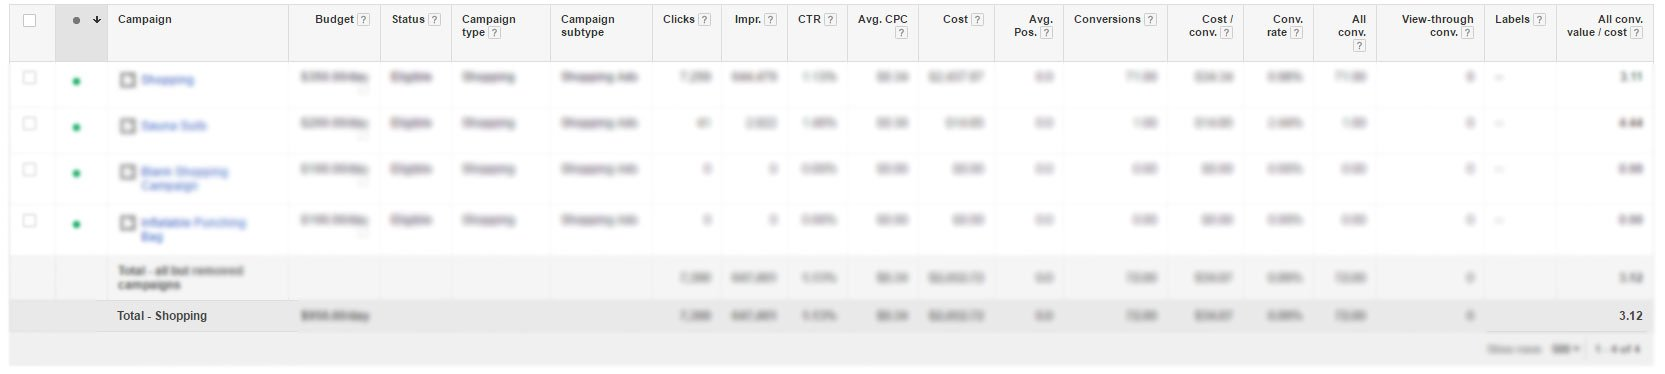 Google Shopping ROI Snapshot After